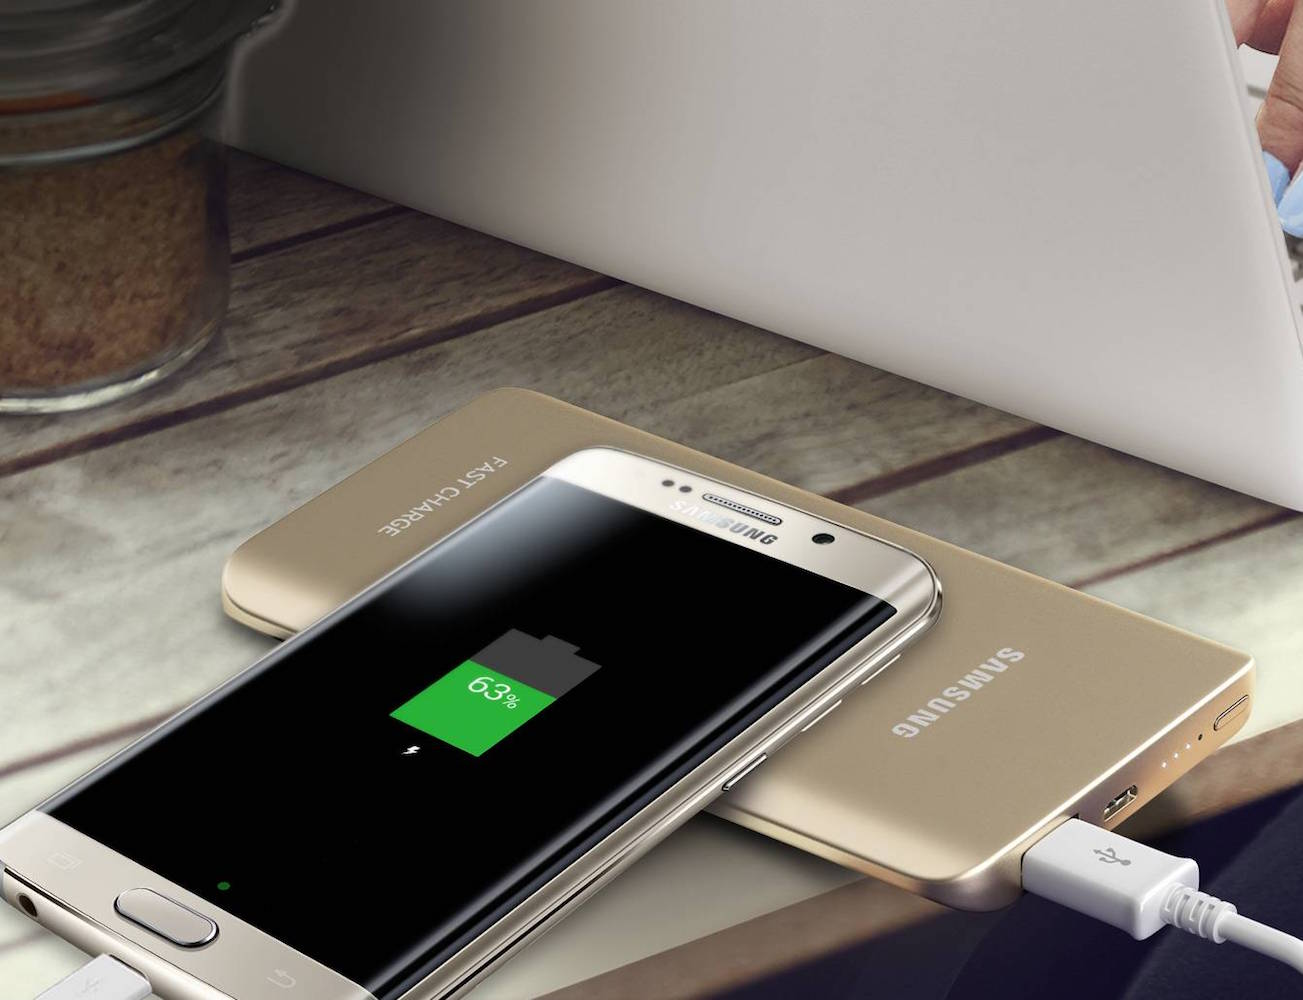 samsung-fast-charge-5200-mah-battery-pack-04